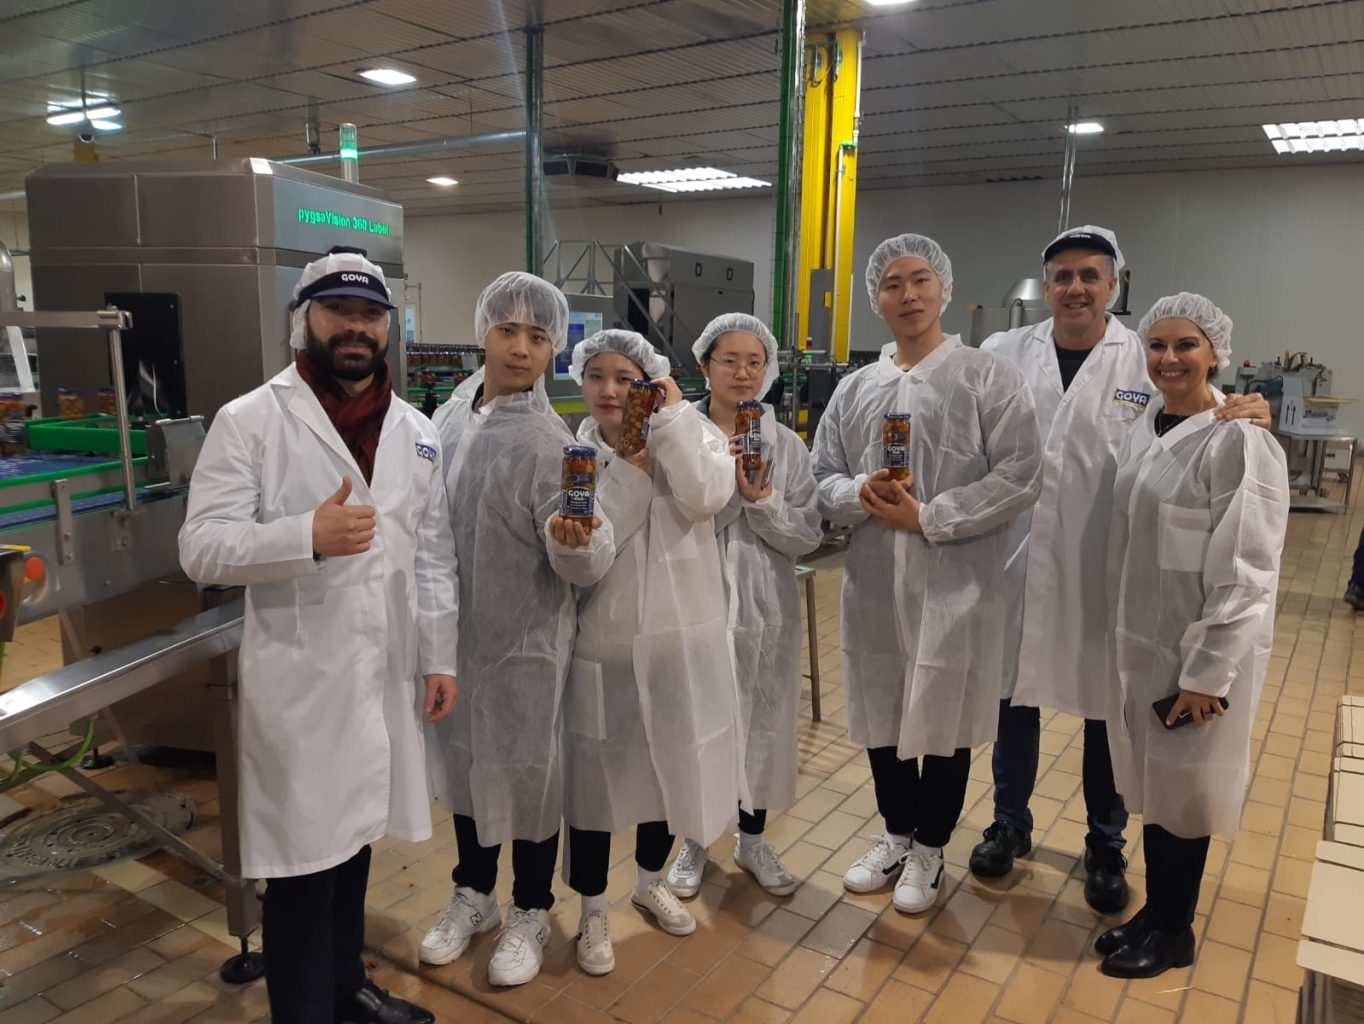 Korean national artistic Taekwondo team at Goya Spain factory